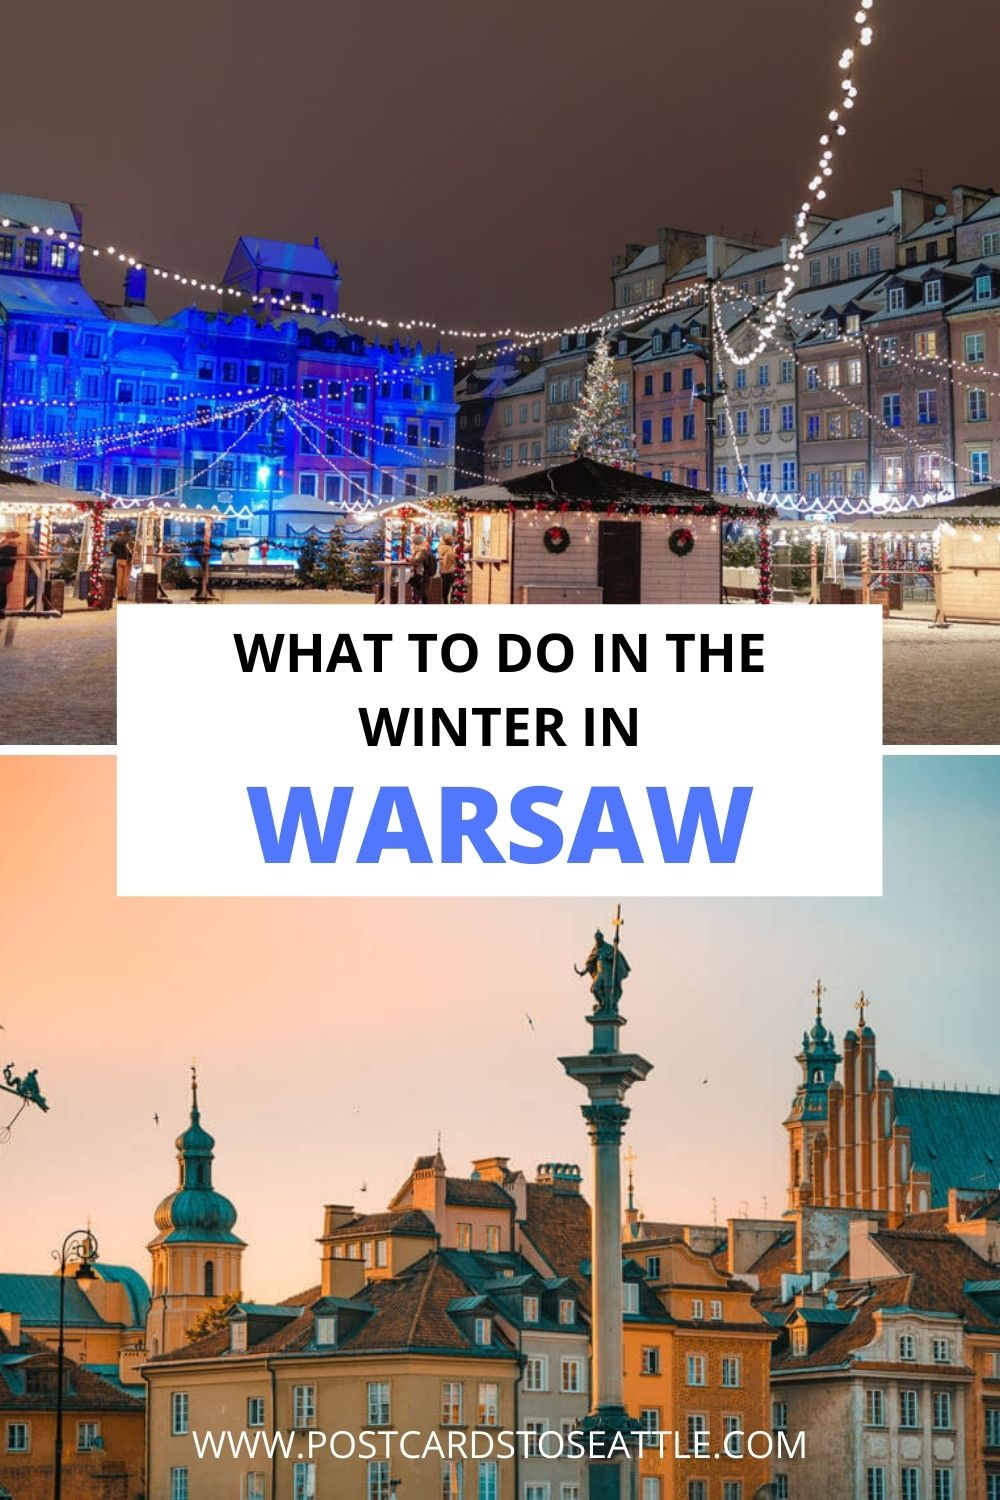 Warsaw in Winter: 15 Fun Things to Do While Staying Warm